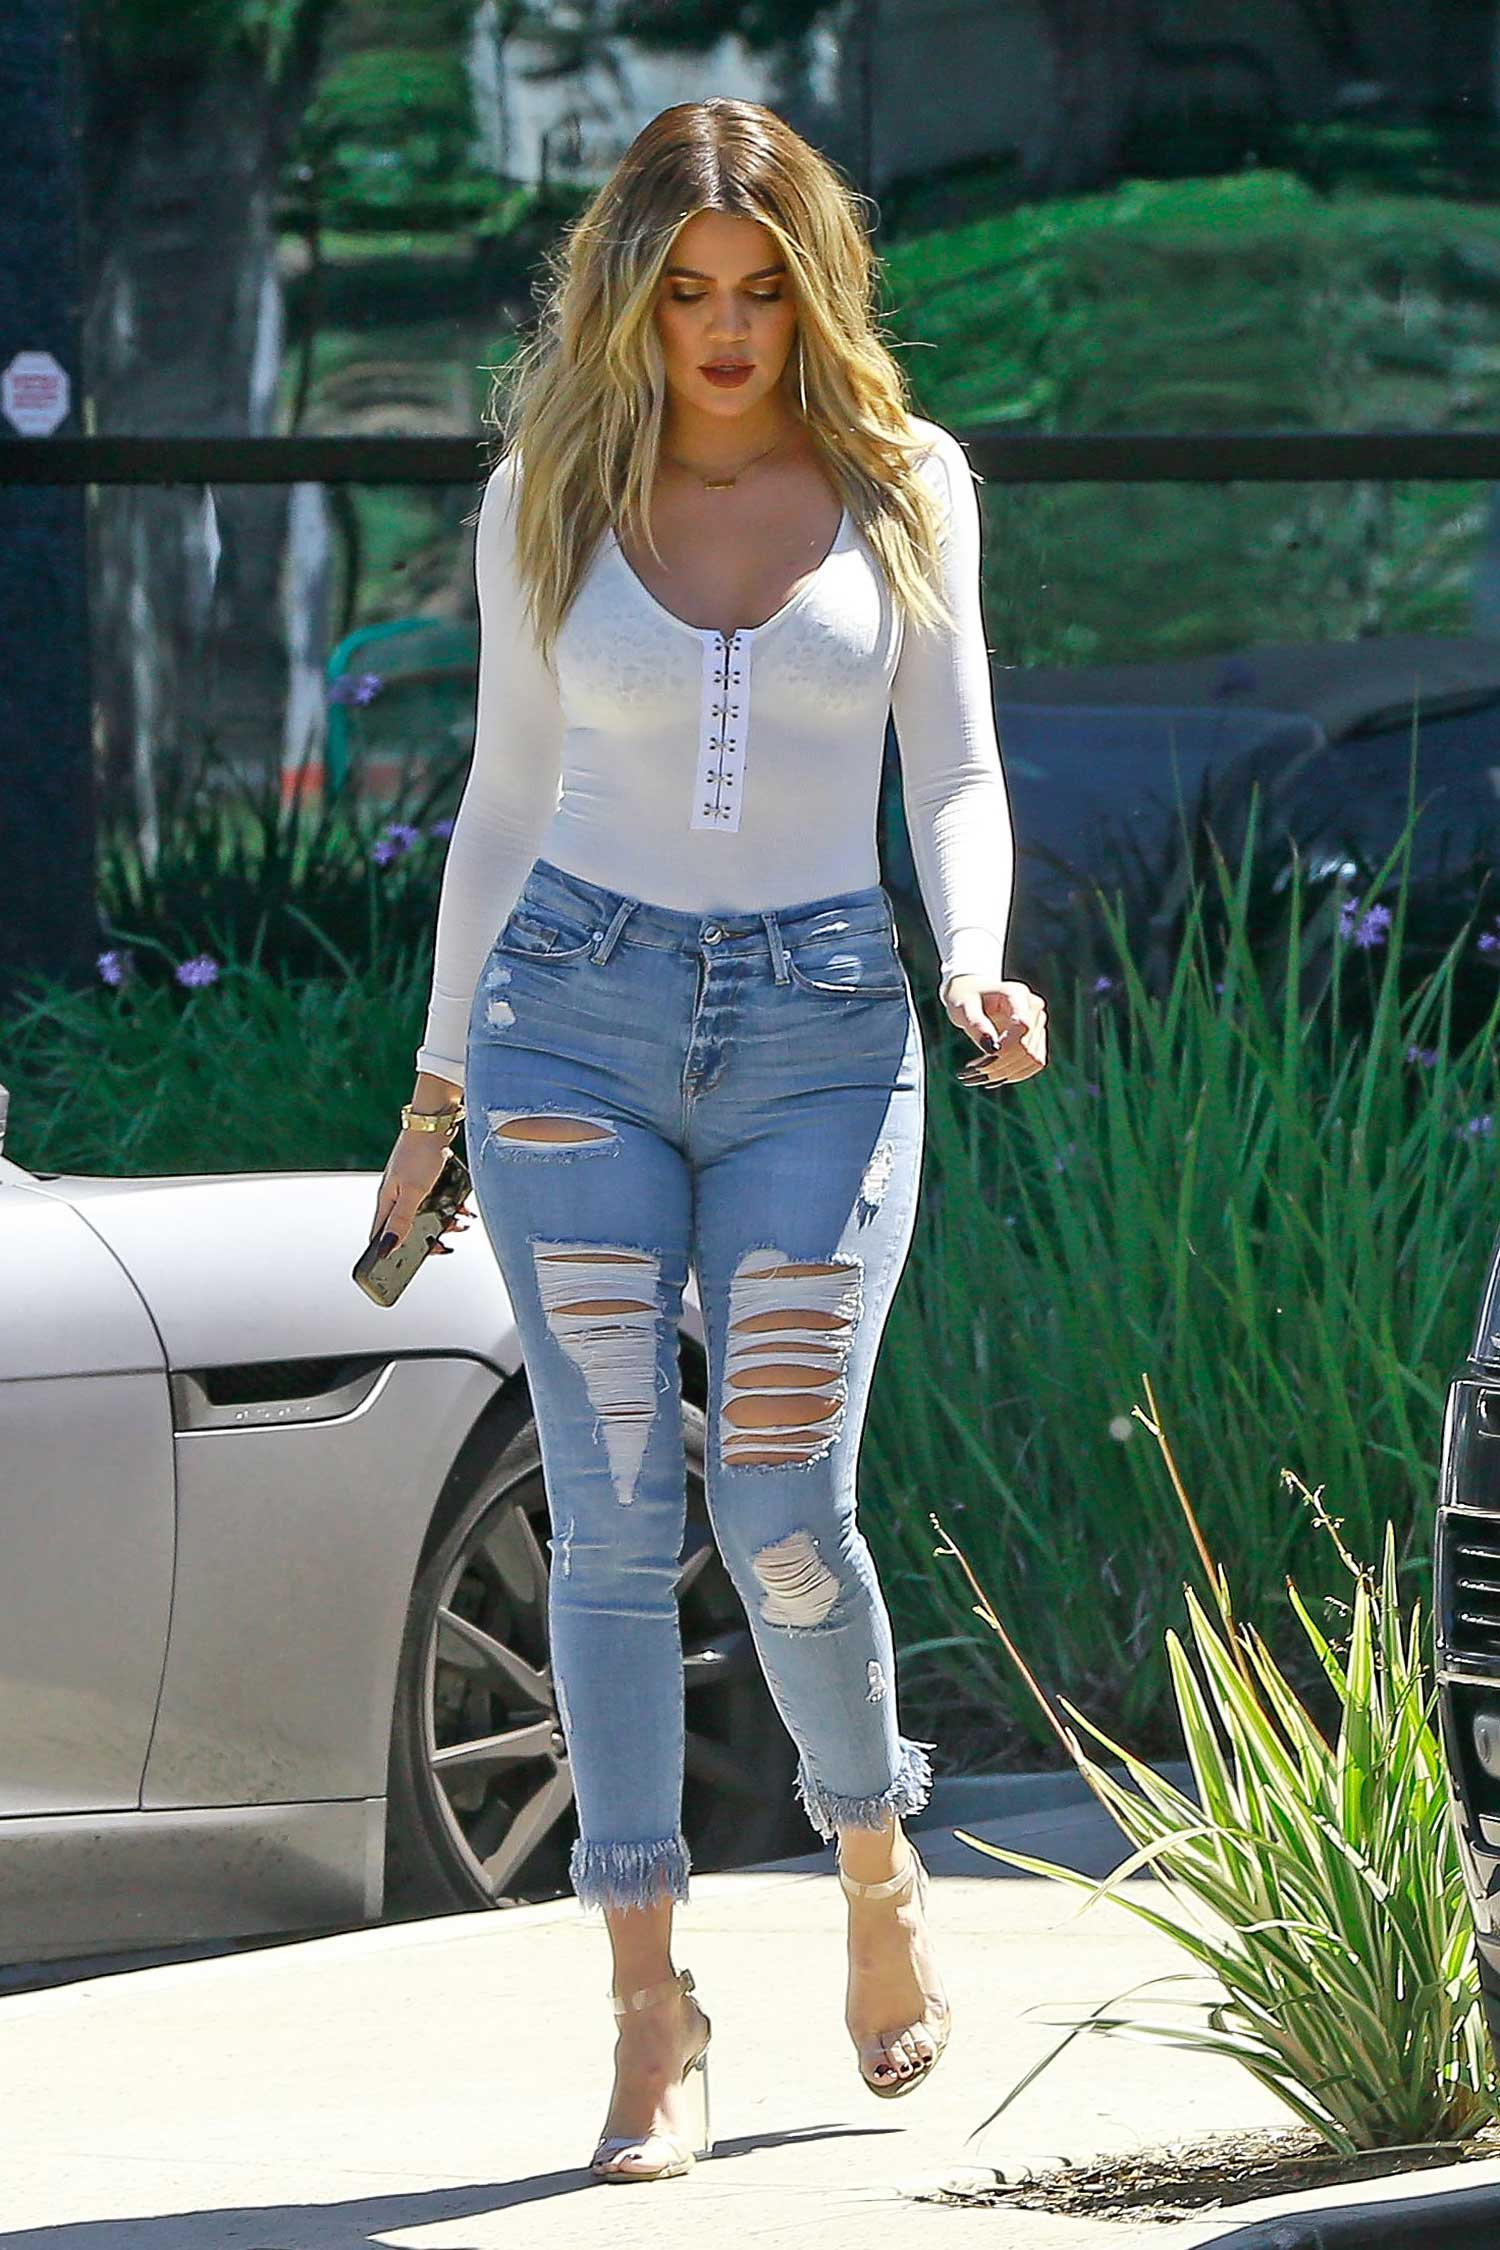 Khloe Kardashian Wears GOOD AMERICAN Good Legs Fray Jeans | The Jeans Blog